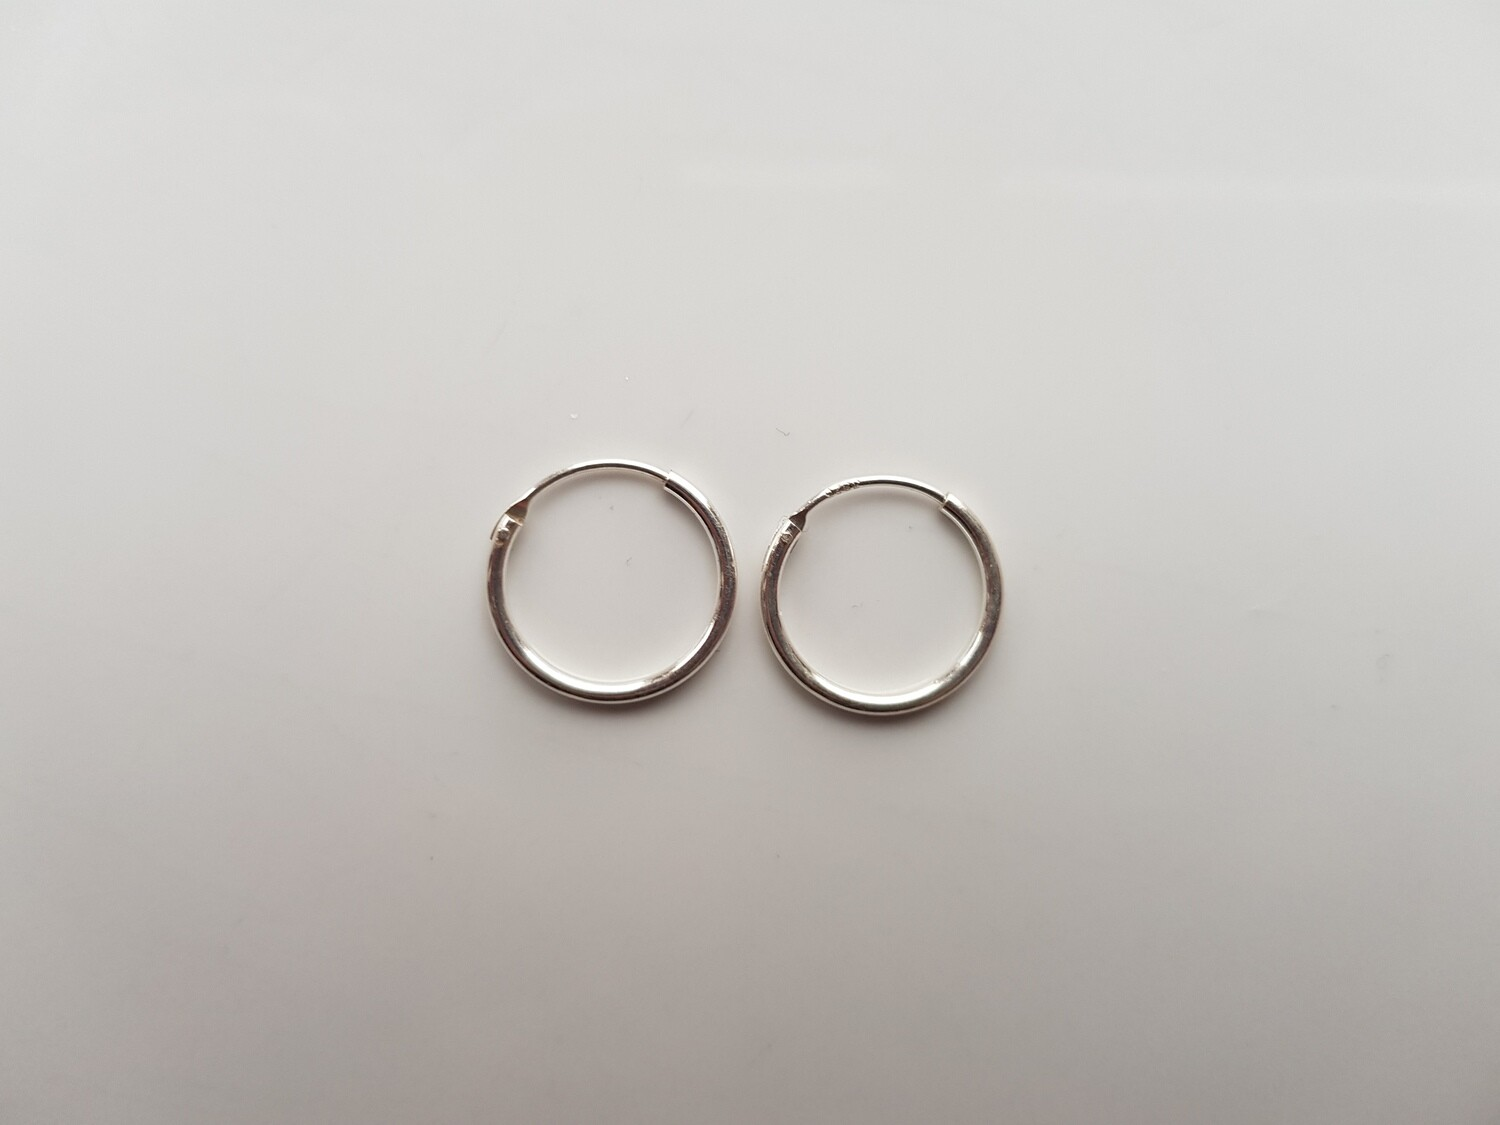 Oorringetjes 925 sterling zilver 12mm